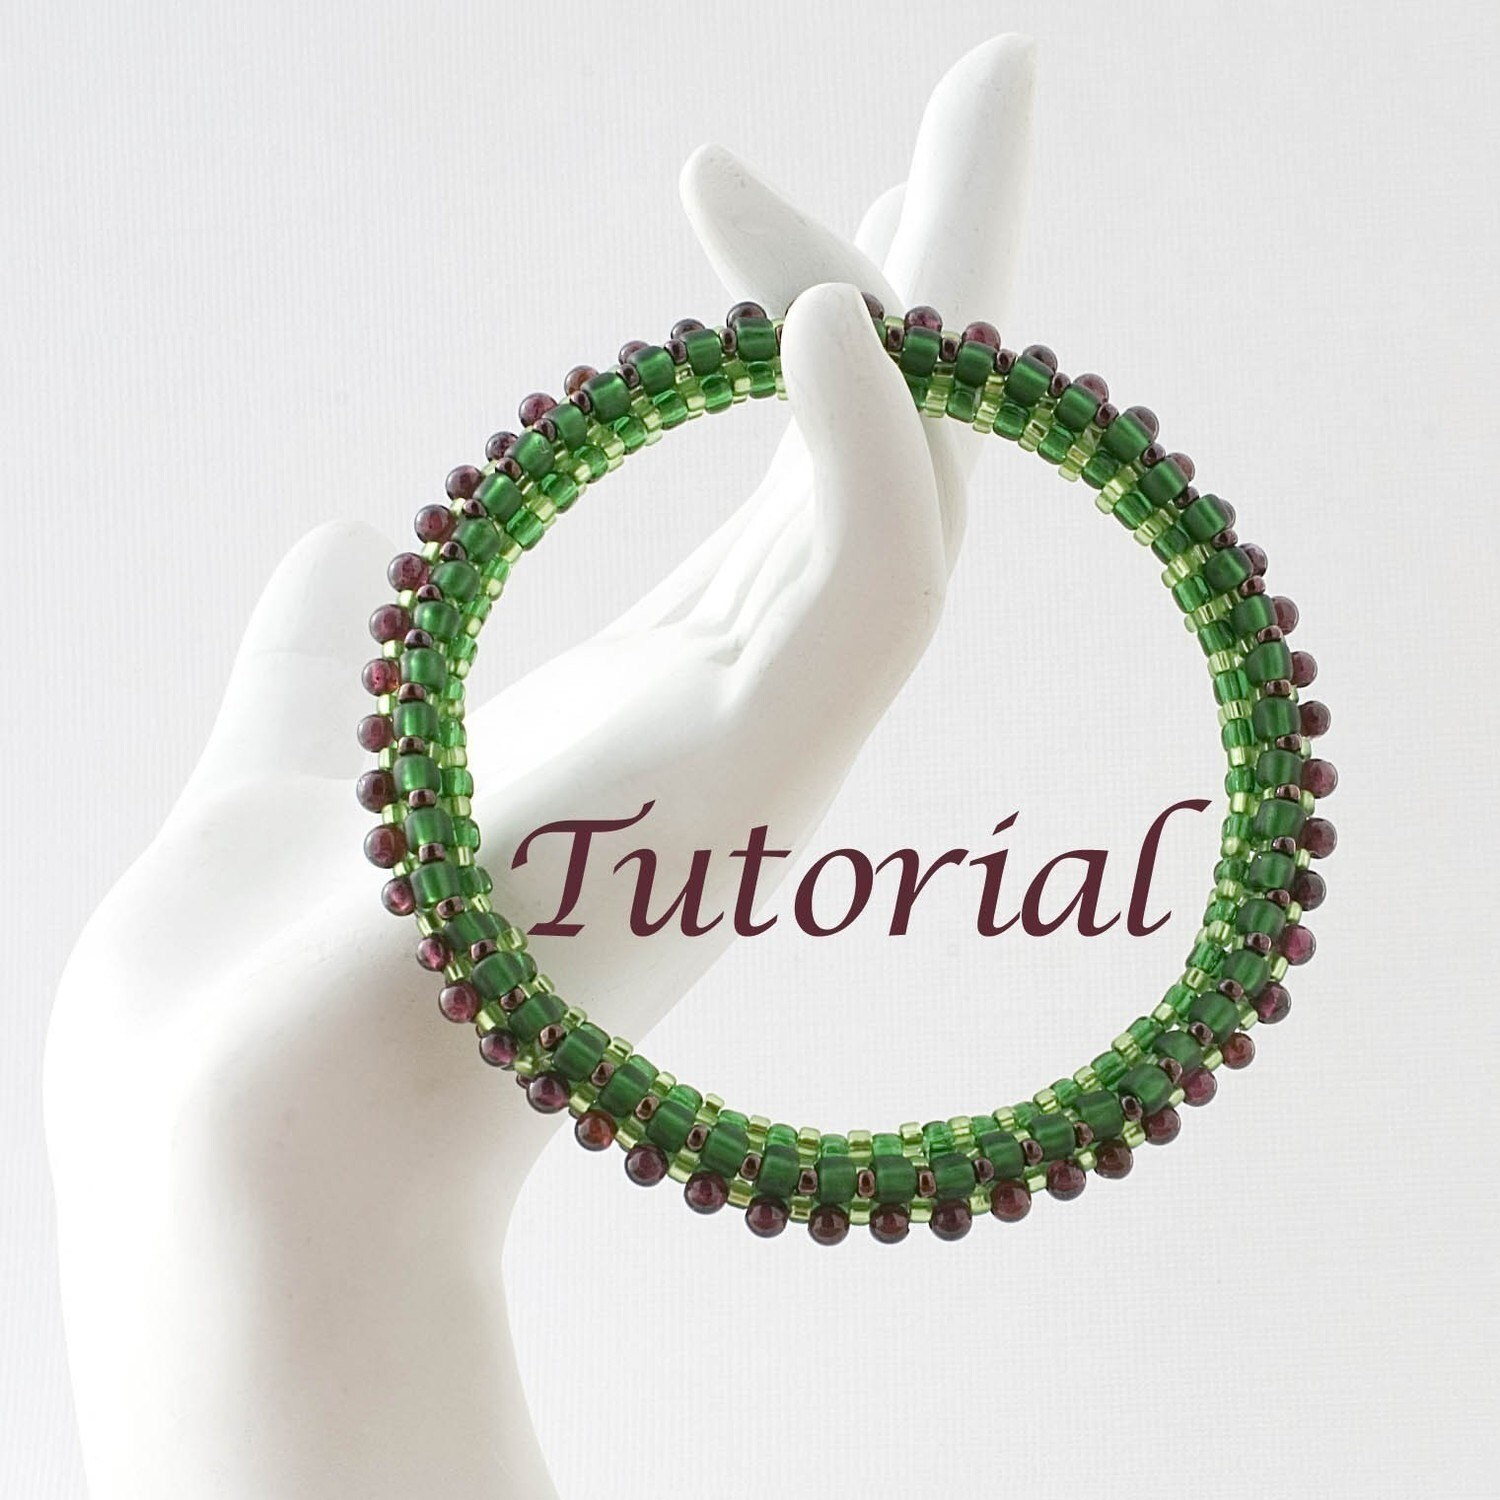 beaded bracelet tutorial. Beaded Bracelet Tutorial Round and Round. From JewelryTales